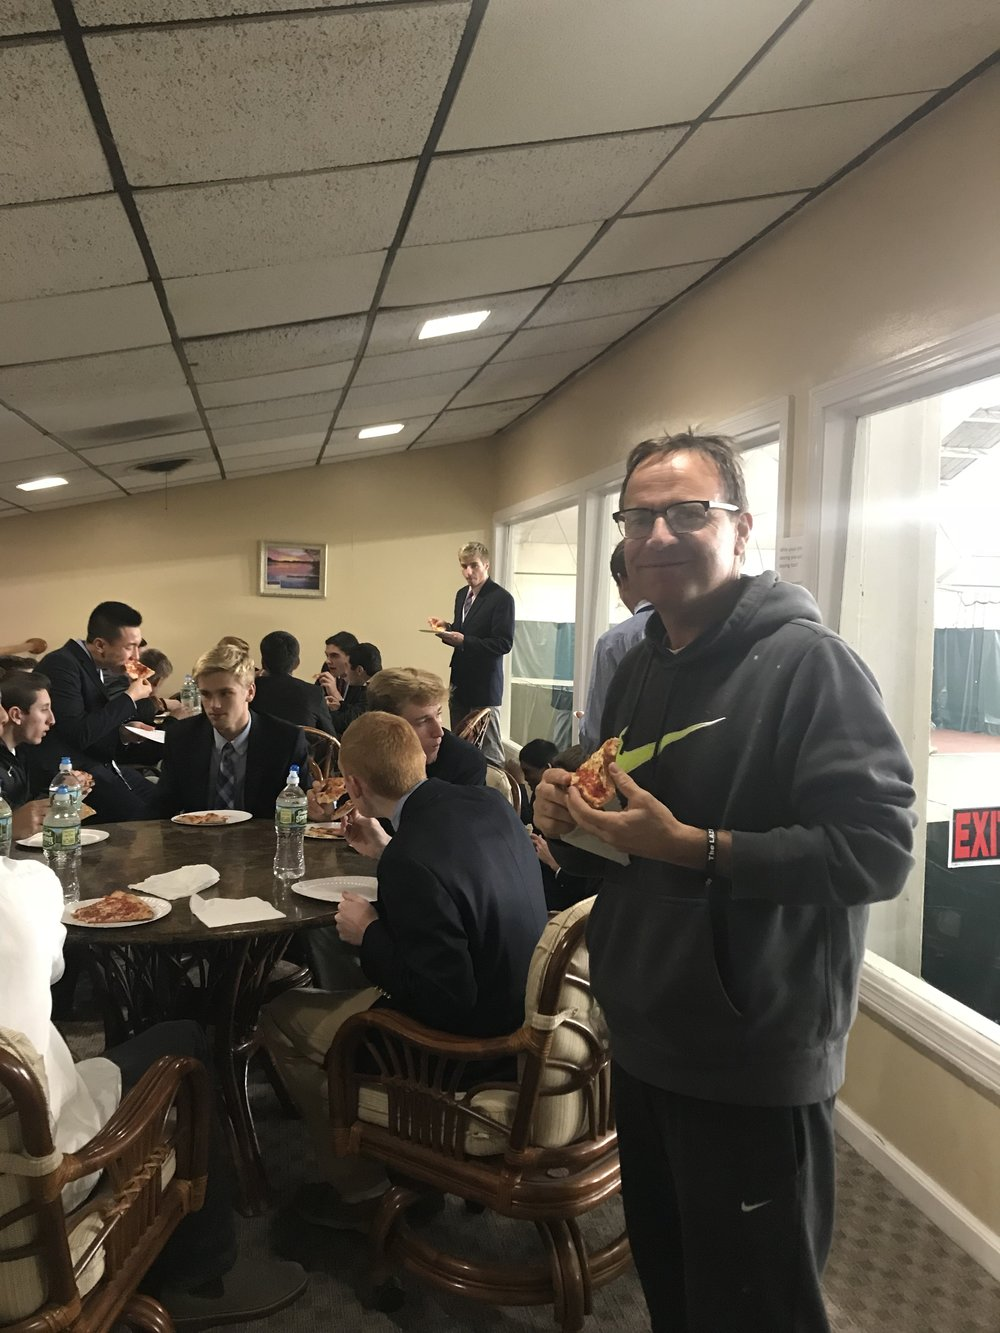 From a pizza party for the Glastonbury High School Soccer Team after winning the 2017 State Championships